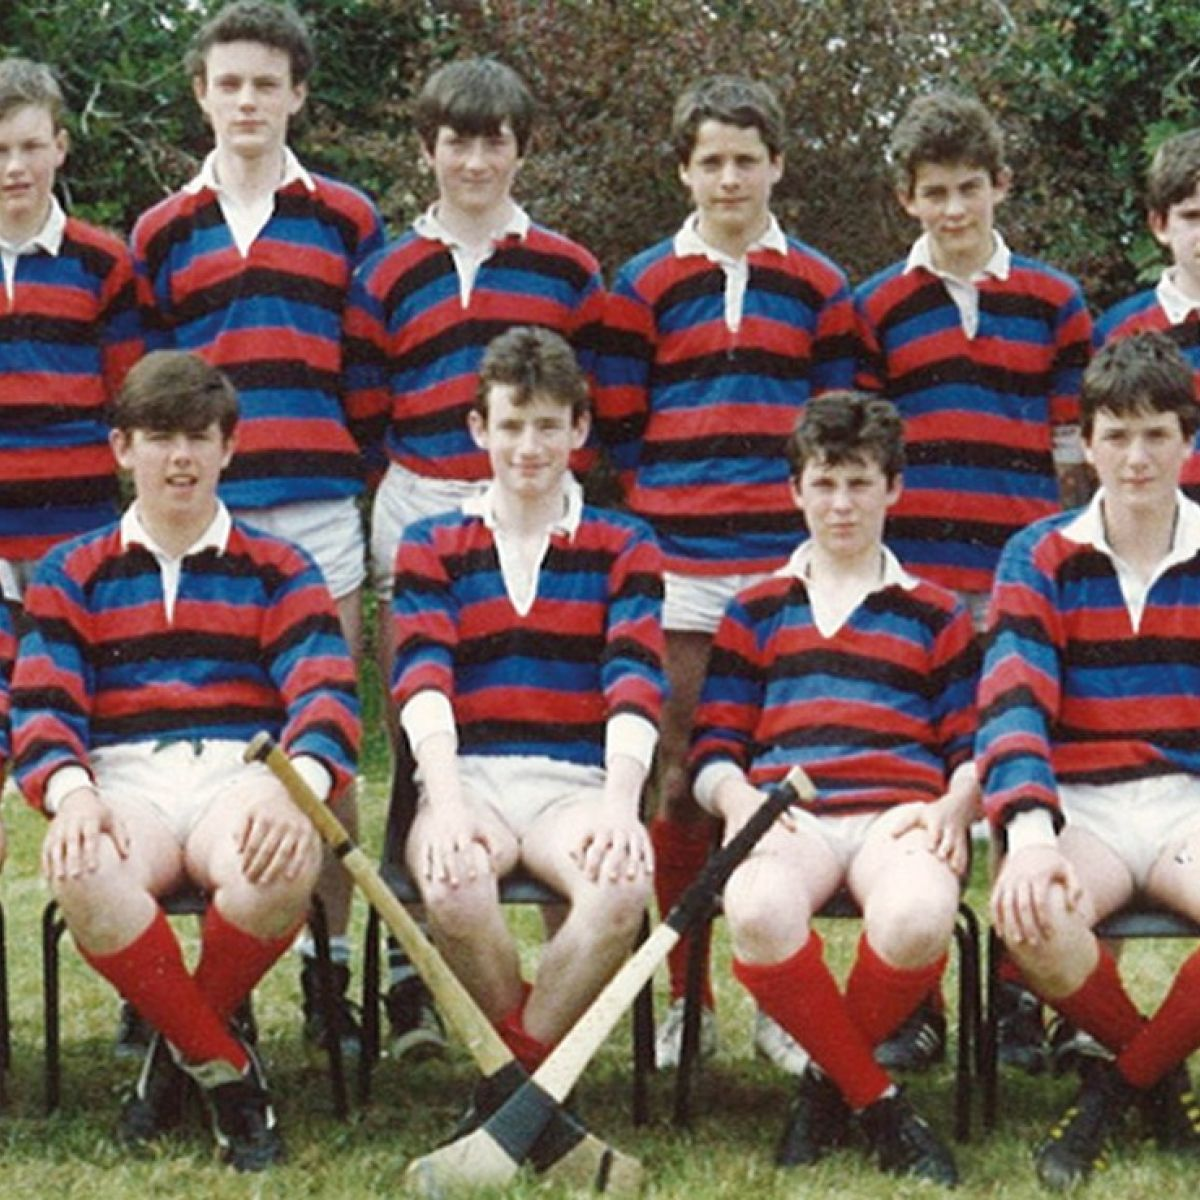 86361432d10 Anthony Foley: A leader forged in St Munchin's who blossomed at Shannon